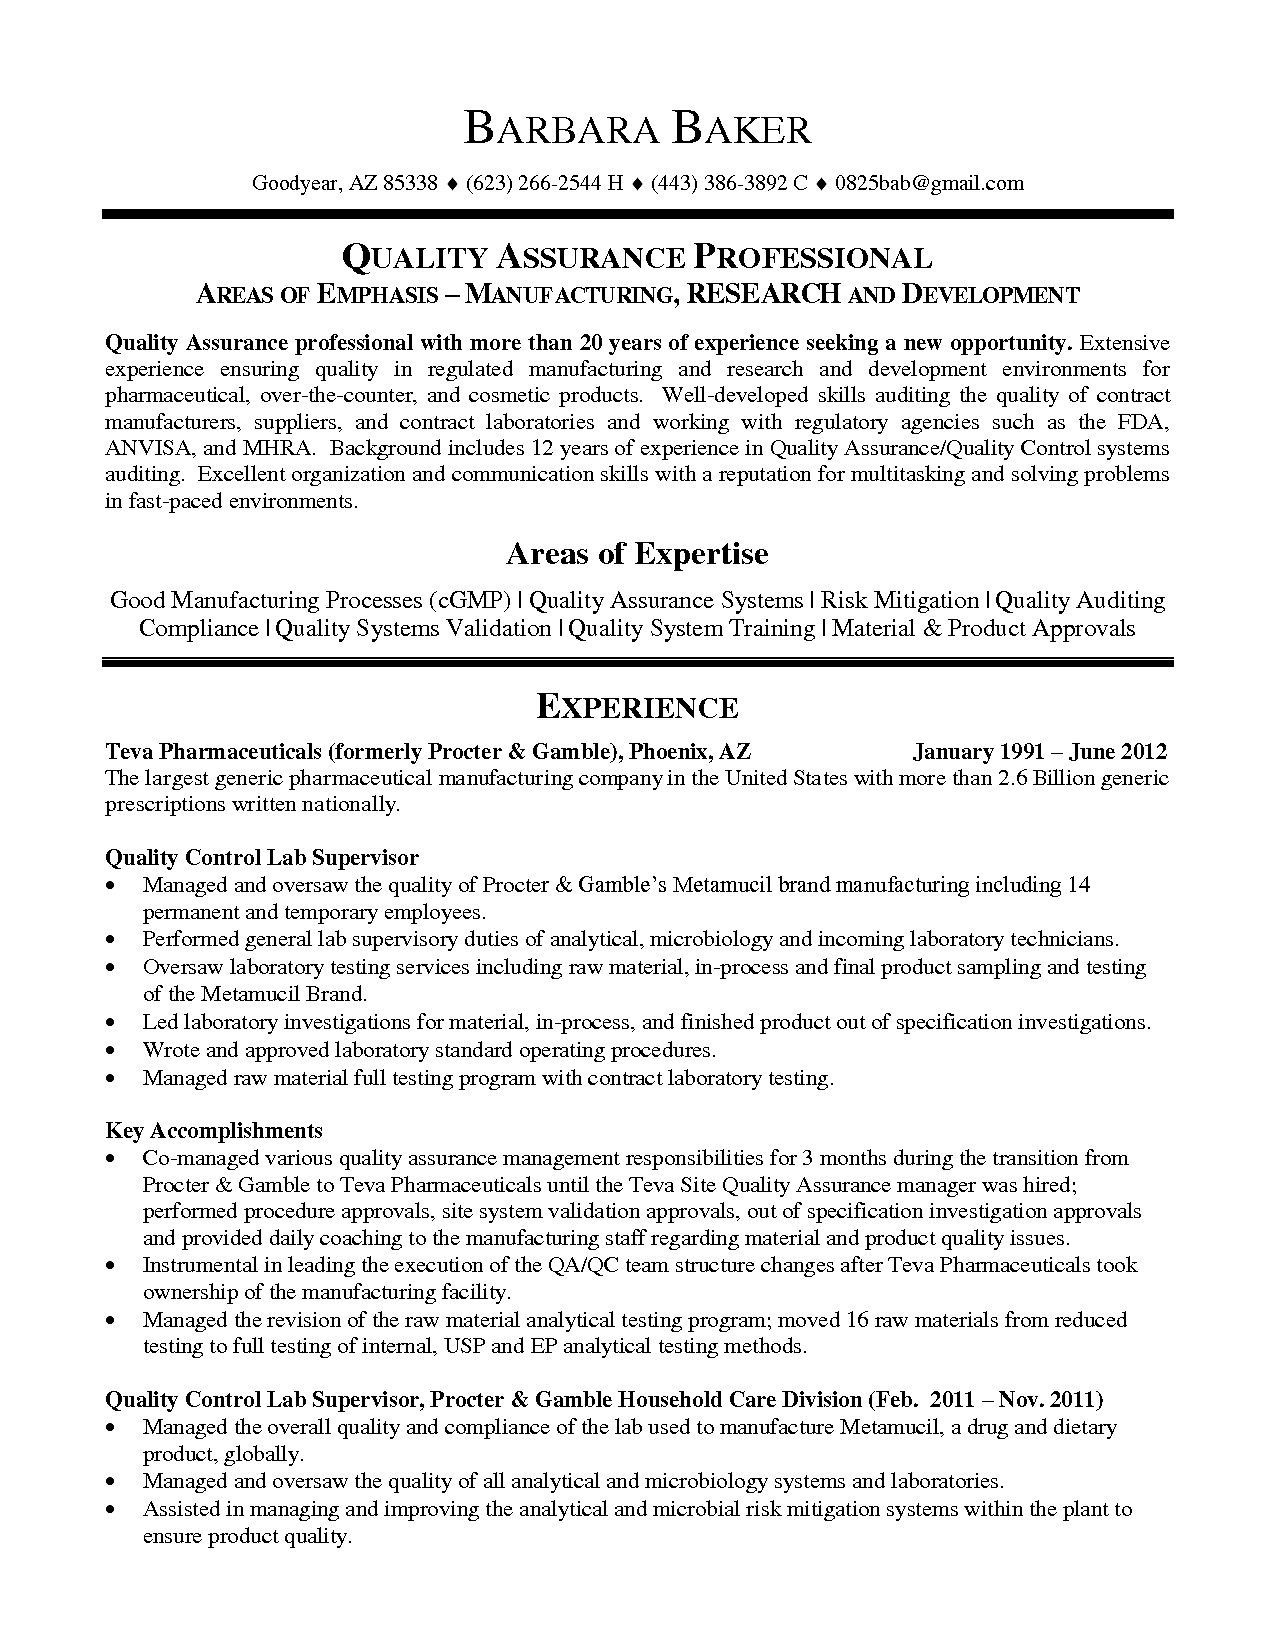 Resume Templates Quality Assurance Manager